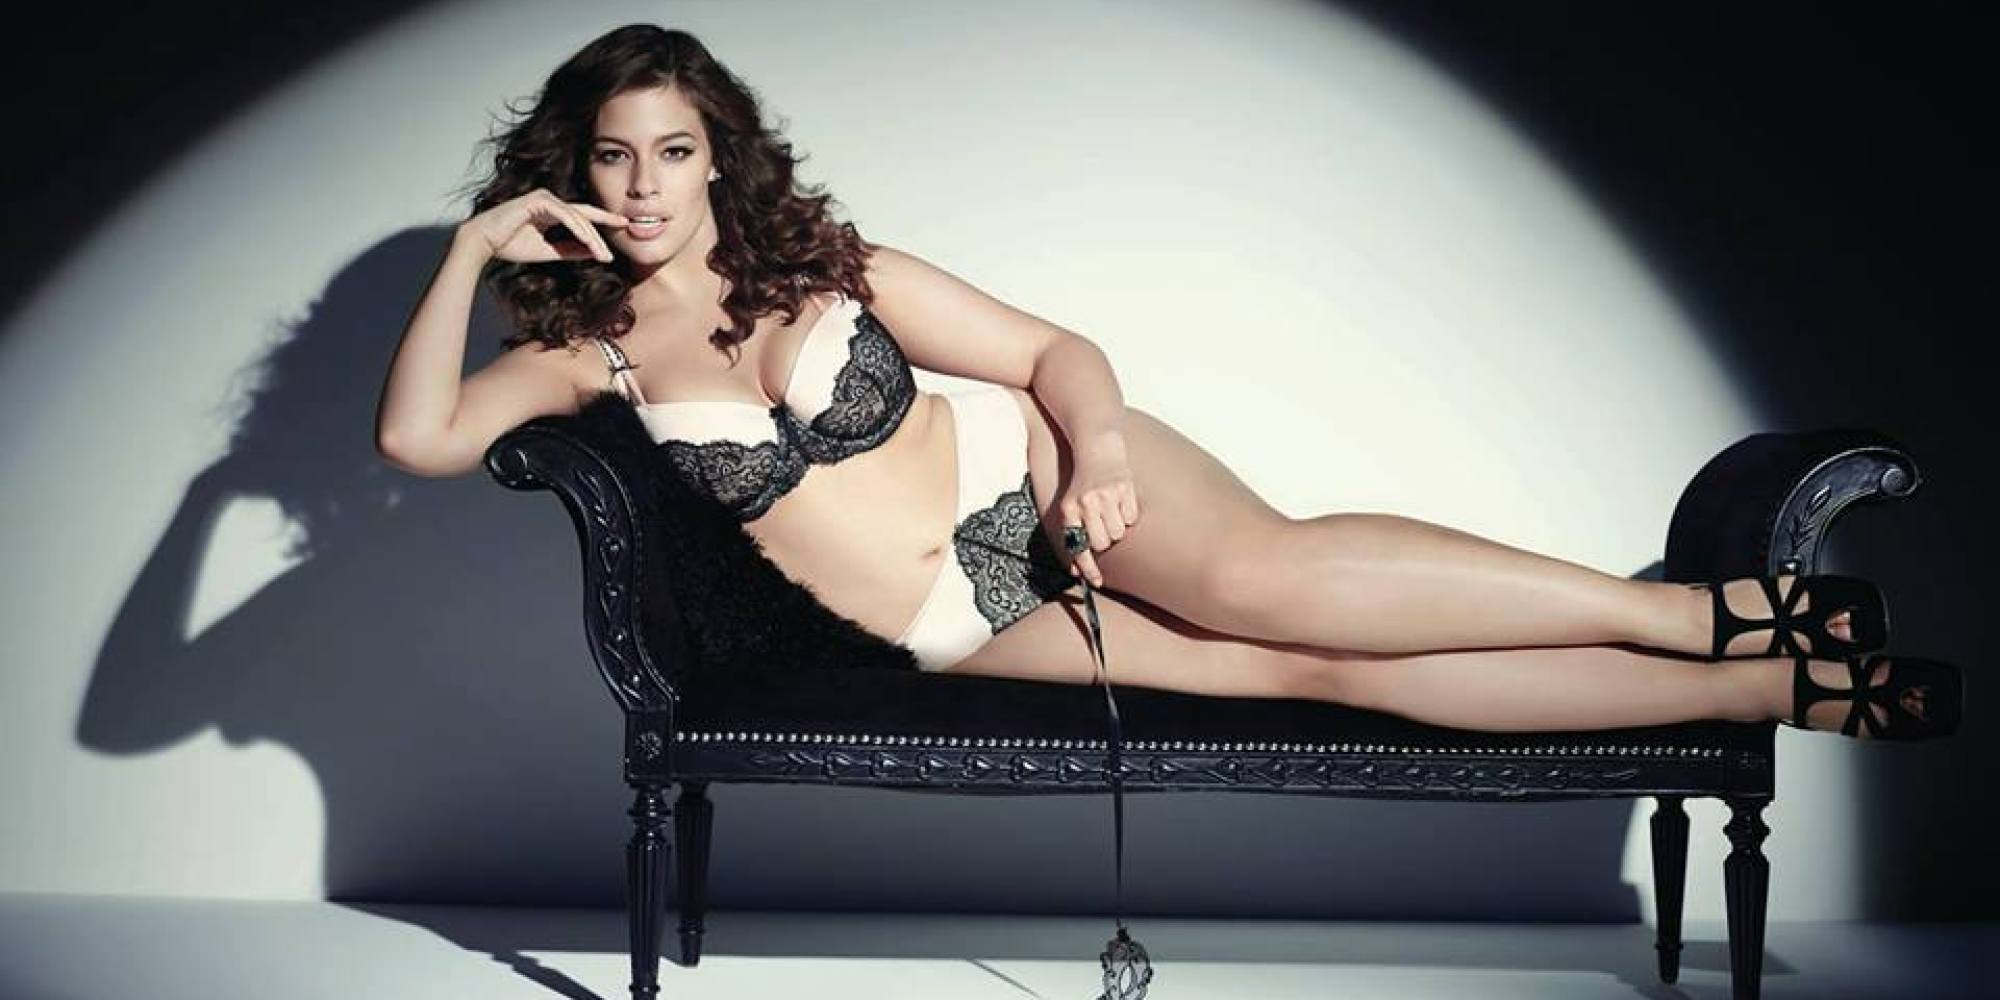 Ashley Graham Plus Size Model Is Poised For Breakout